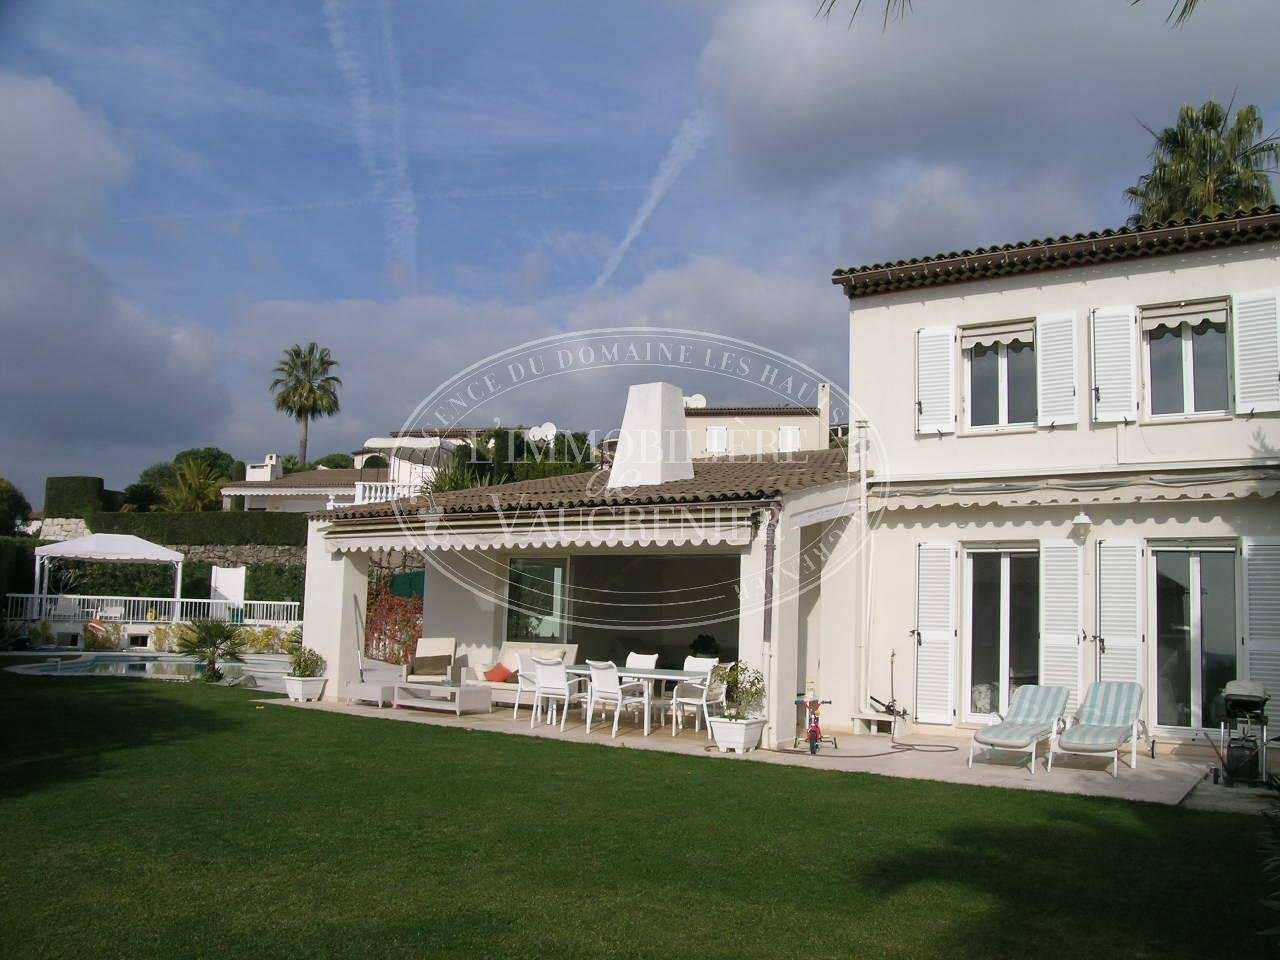 FOR SALE HAUTS DE VAUGRENIER SEMI ATTACHED VILLA 5 ROOMS 1 790 000.-€